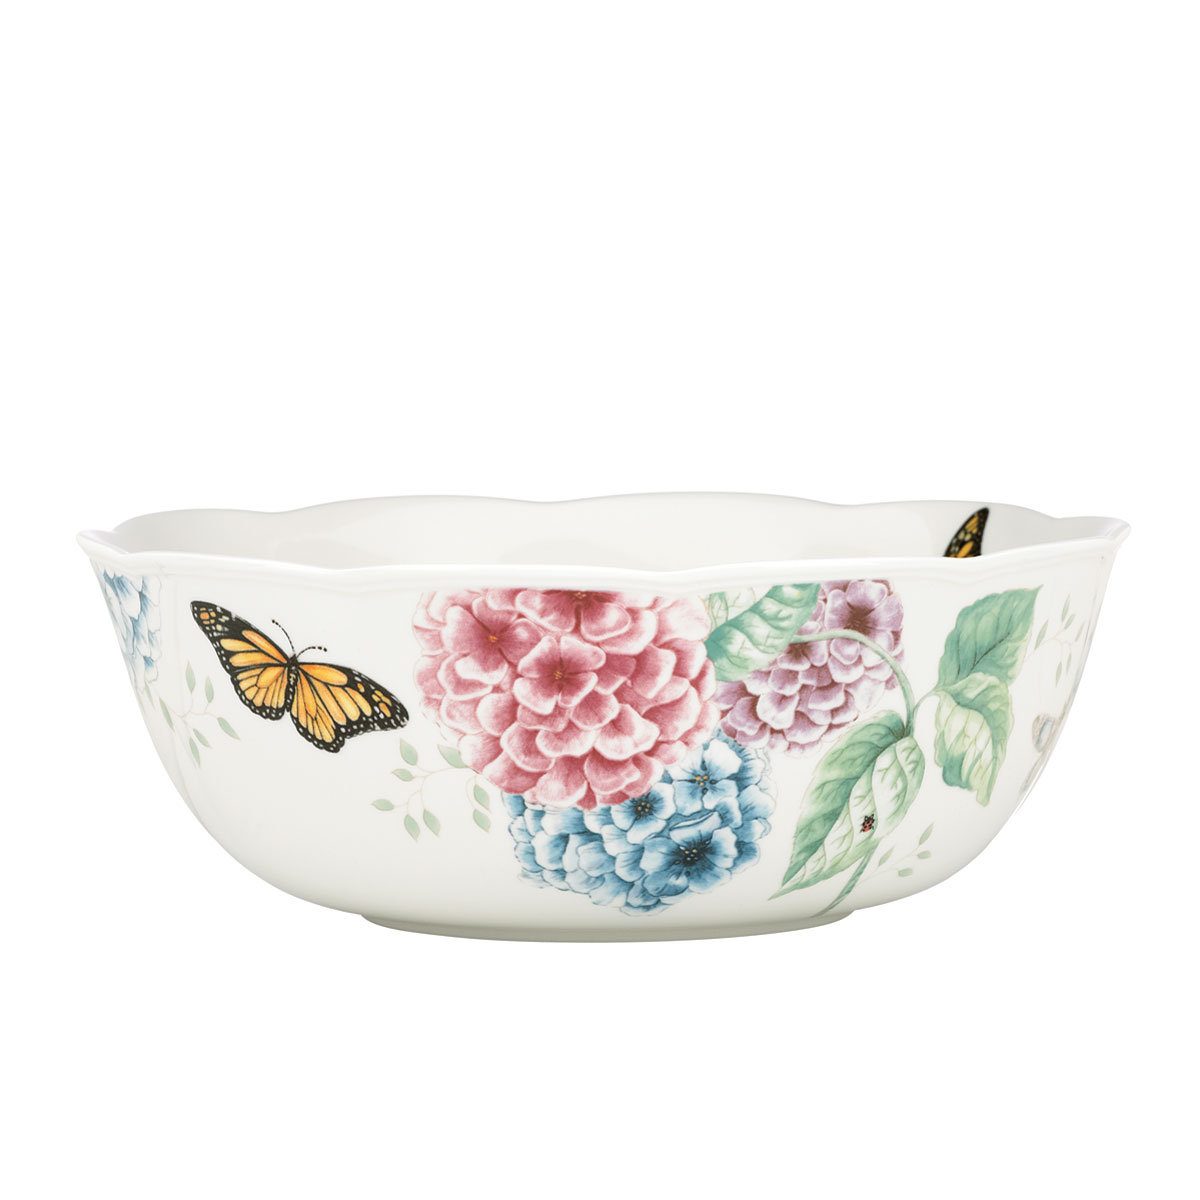 Lenox Butterfly Meadow Hydrangea Dinnerware Serving Bowl